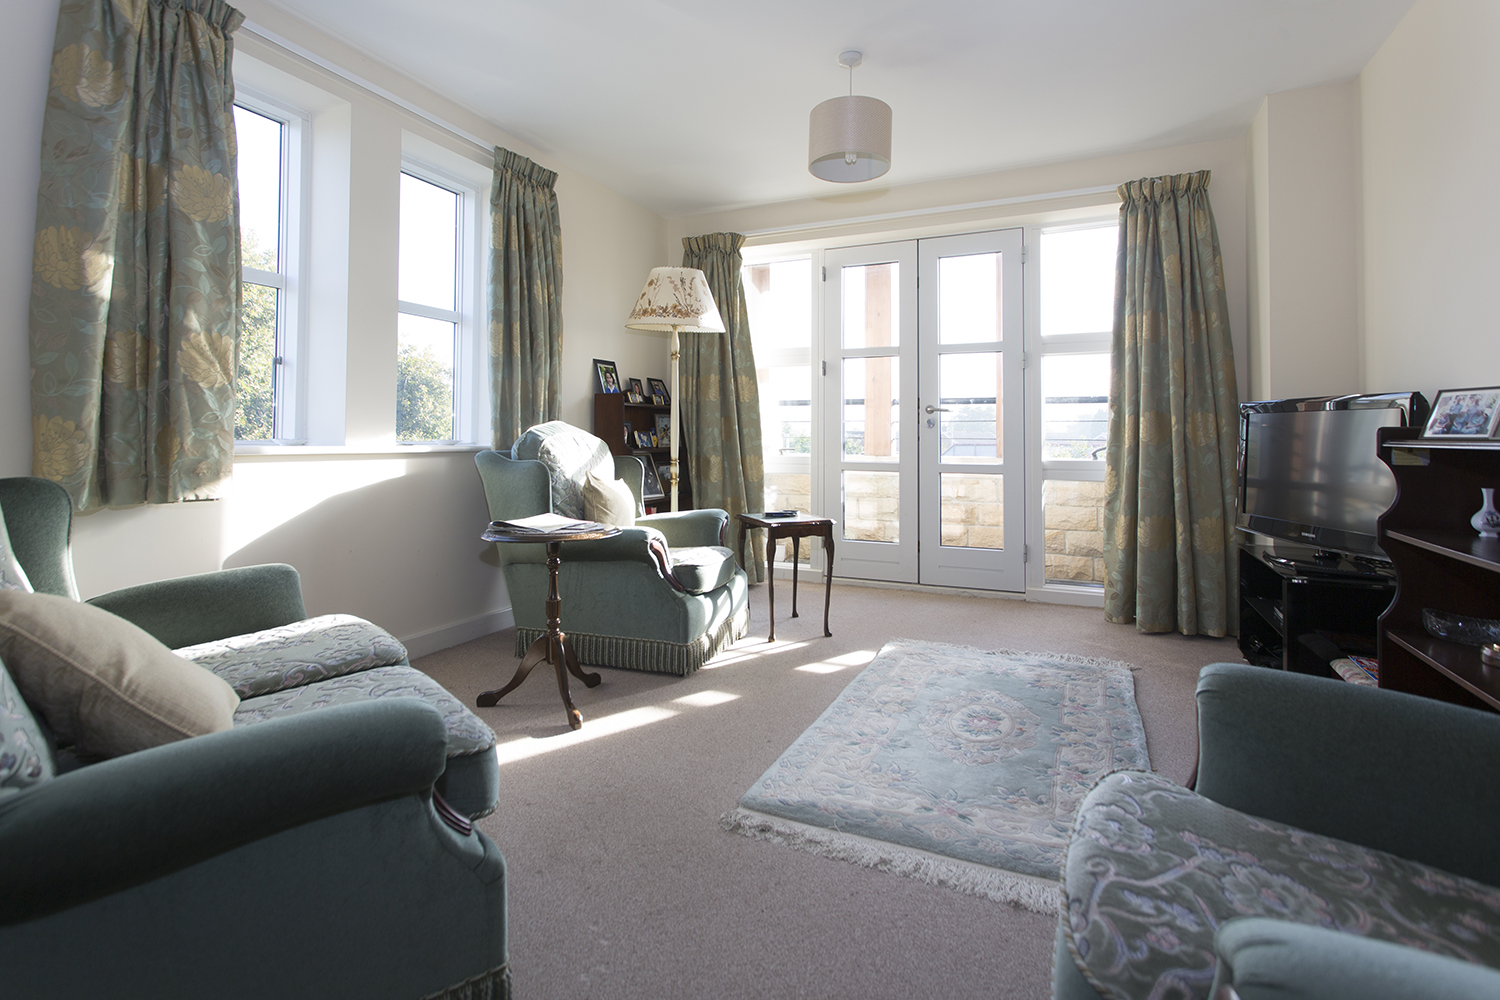 Beeches_sitting_room